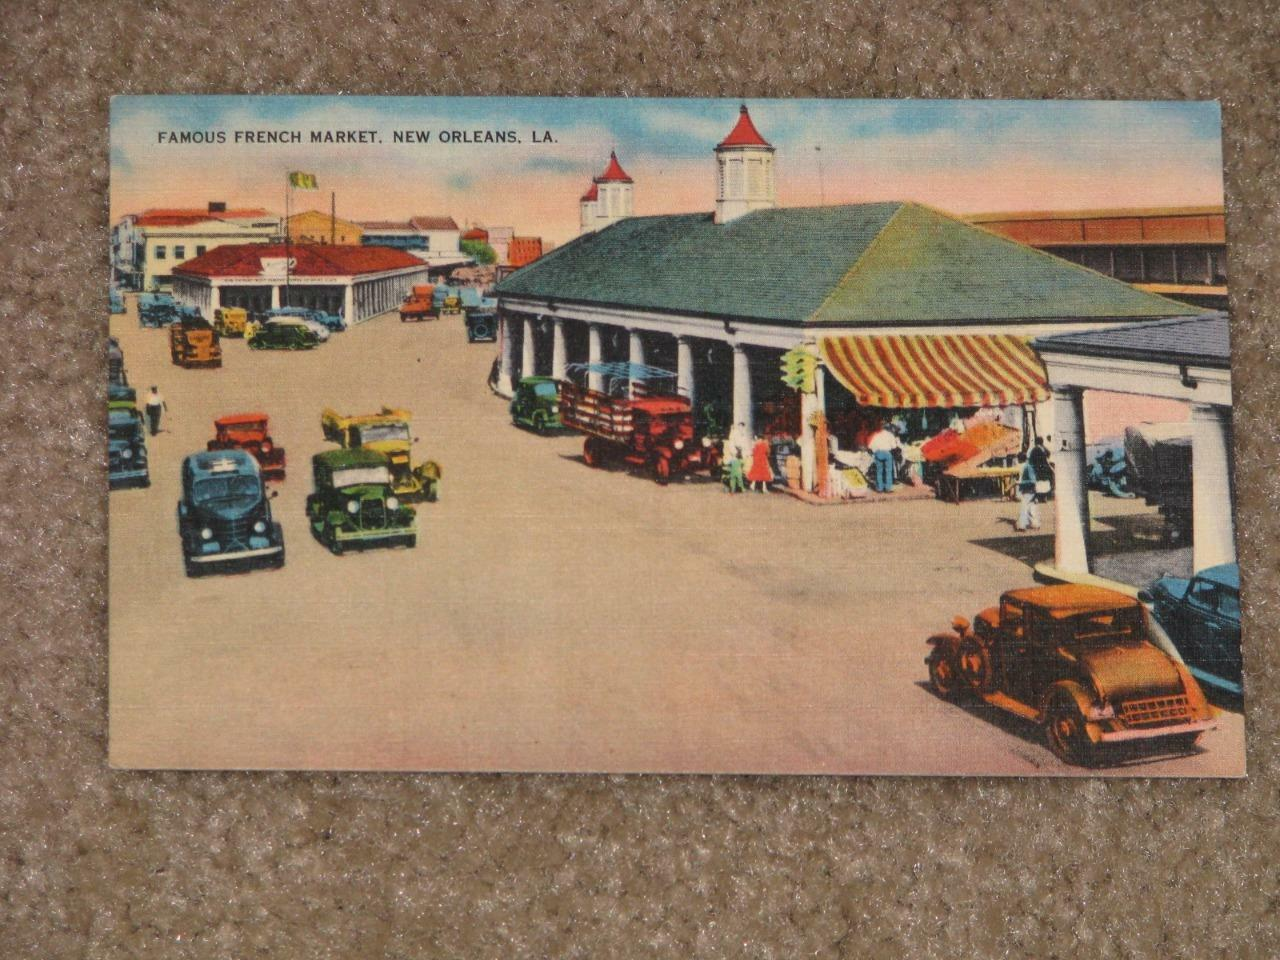 Famous French Market, New Orleans, unused vintage card